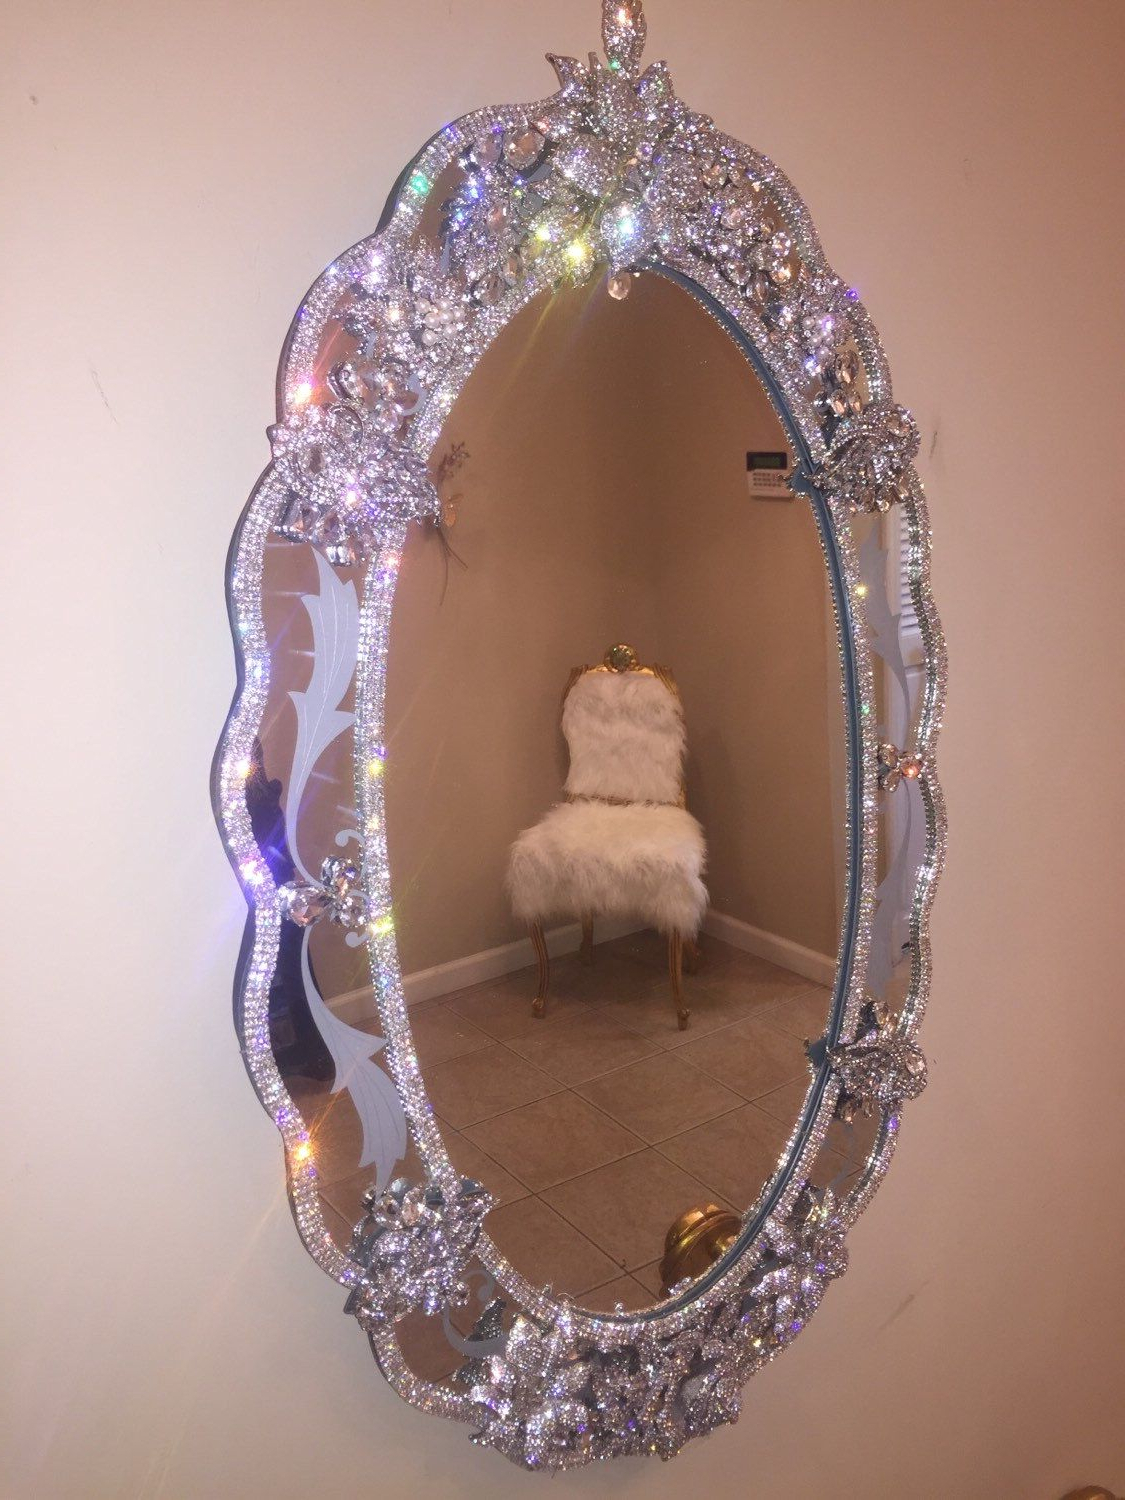 Widely Used Rhinestone Wall Mirrors Inside Find Inspiration To Decorate The Kids' Room With The Latest Trends (View 4 of 20)